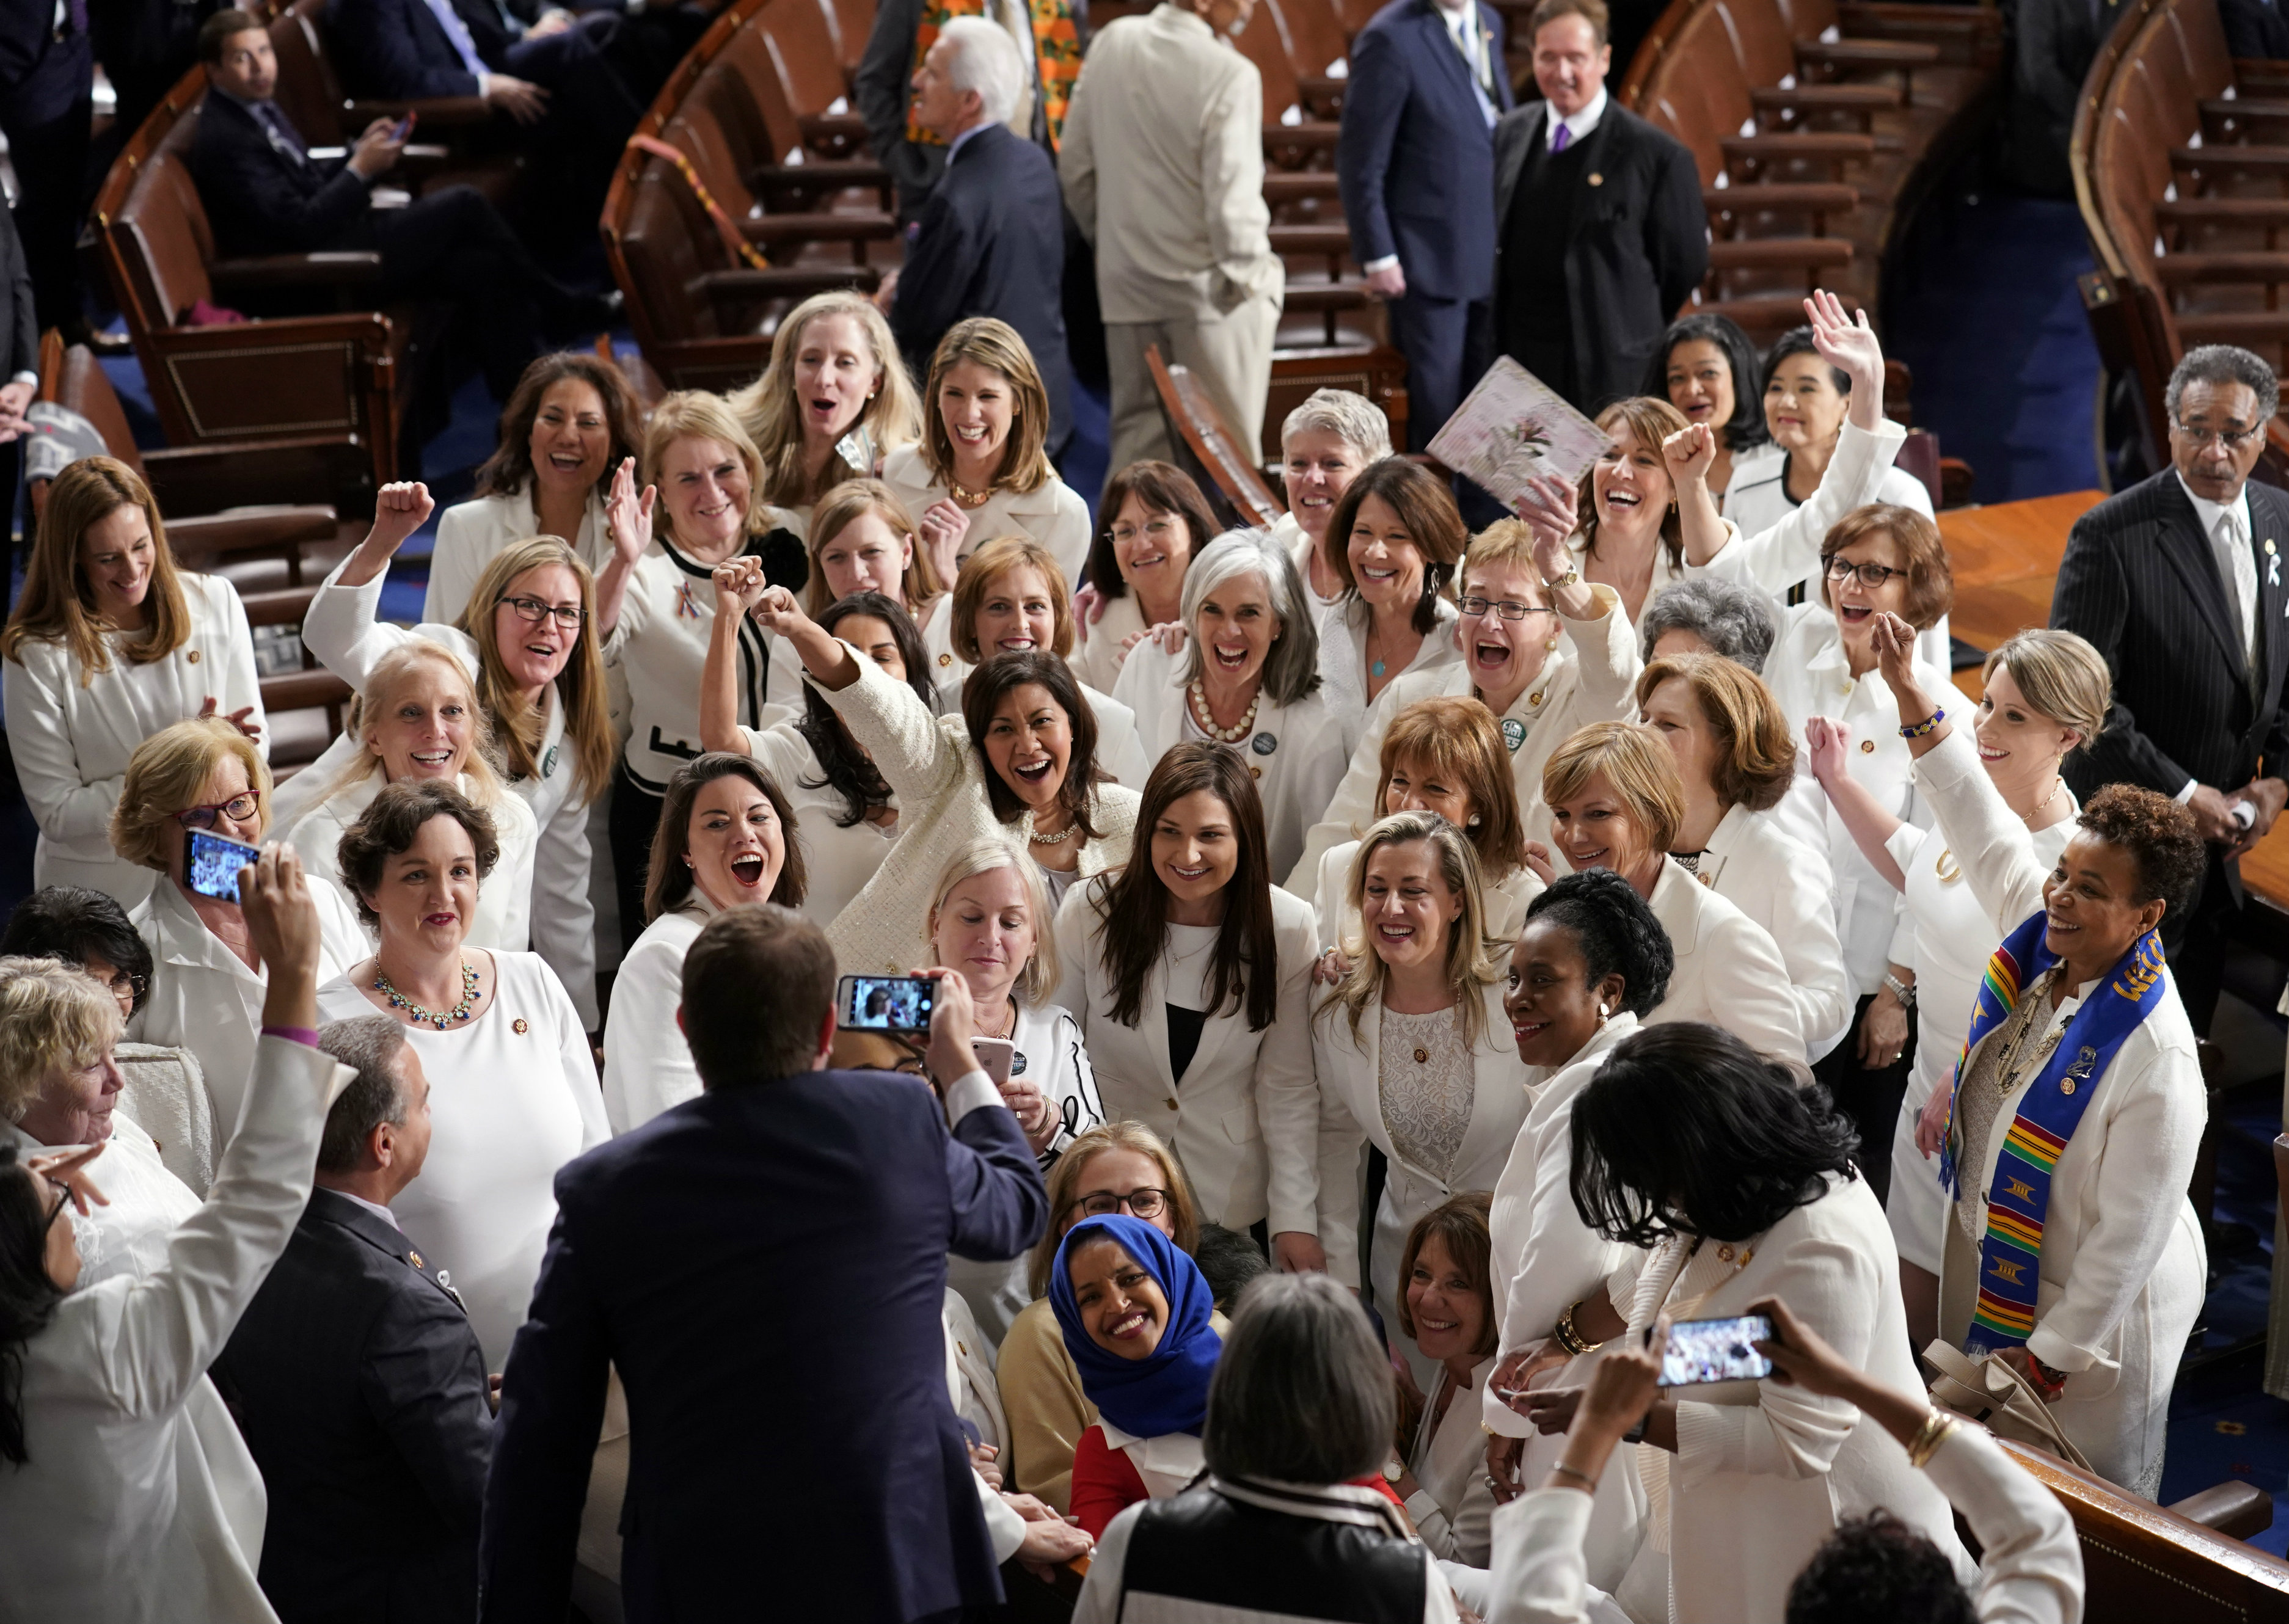 As Congress awaited Donald Trump's entrance, the most striking sight was the unmistakable block of Congresswomen practically aglow in white on the Democratic side of the aisle.